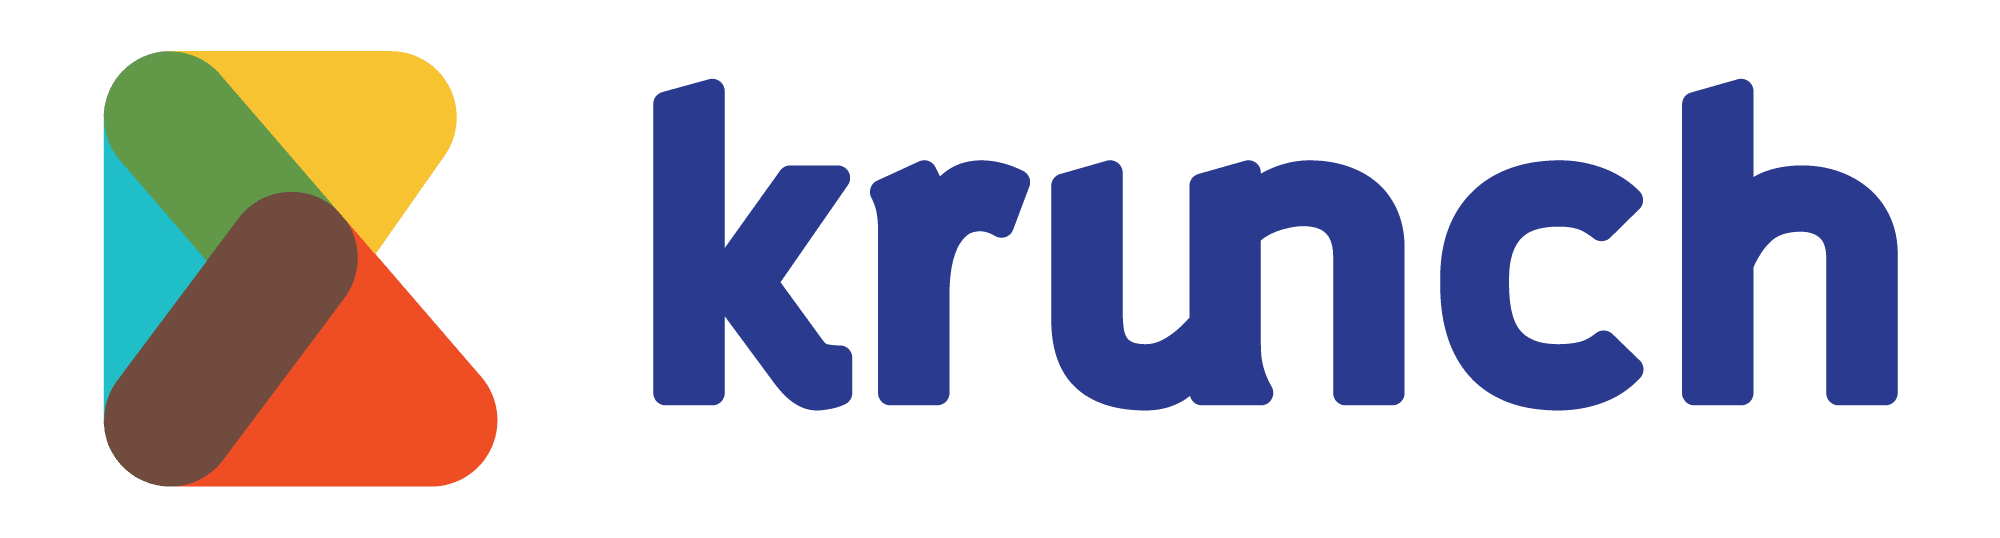 Krunch logo the developer community cockpit